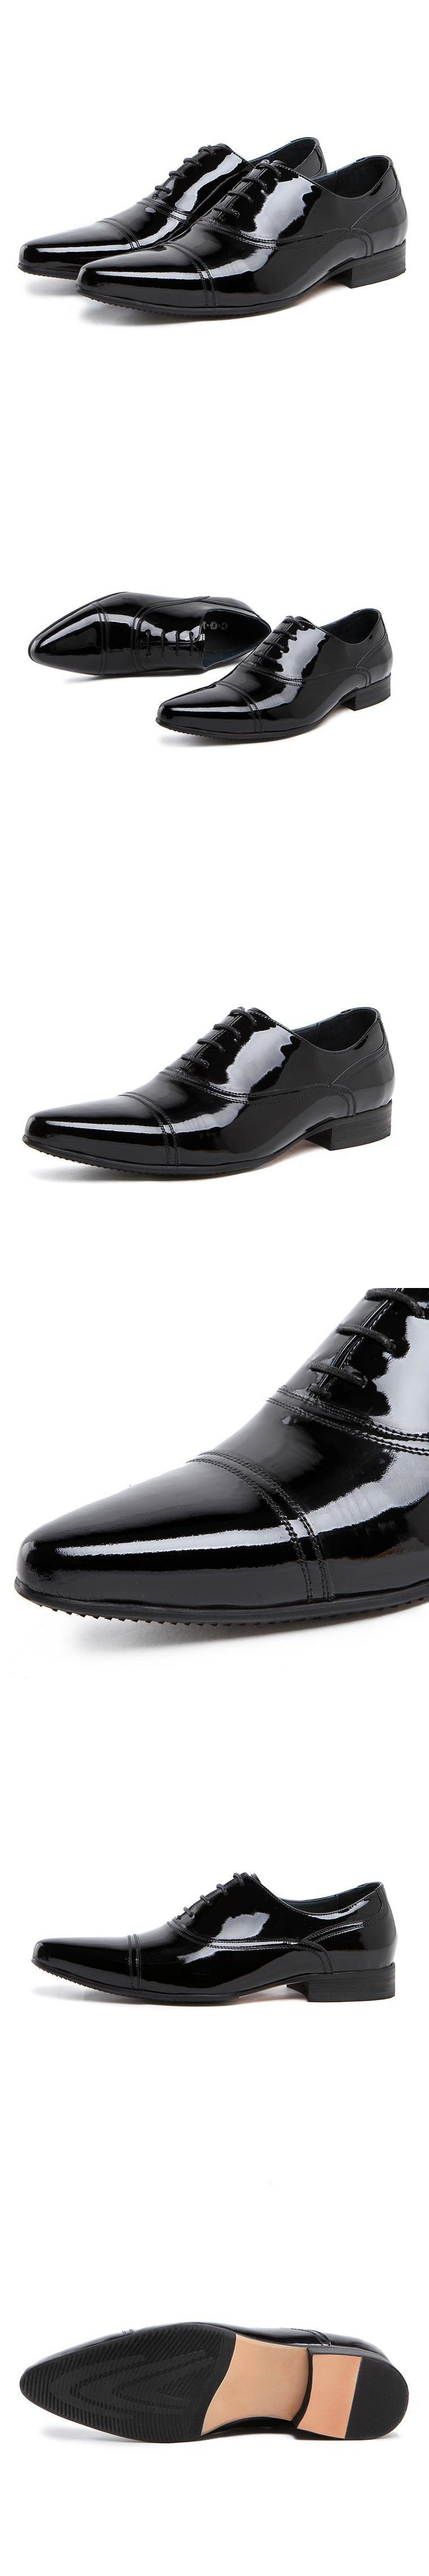 2015 new spring and autumn fashion Men's full grain patent leather England Pointed toe Business dress solid office oxfords shoes